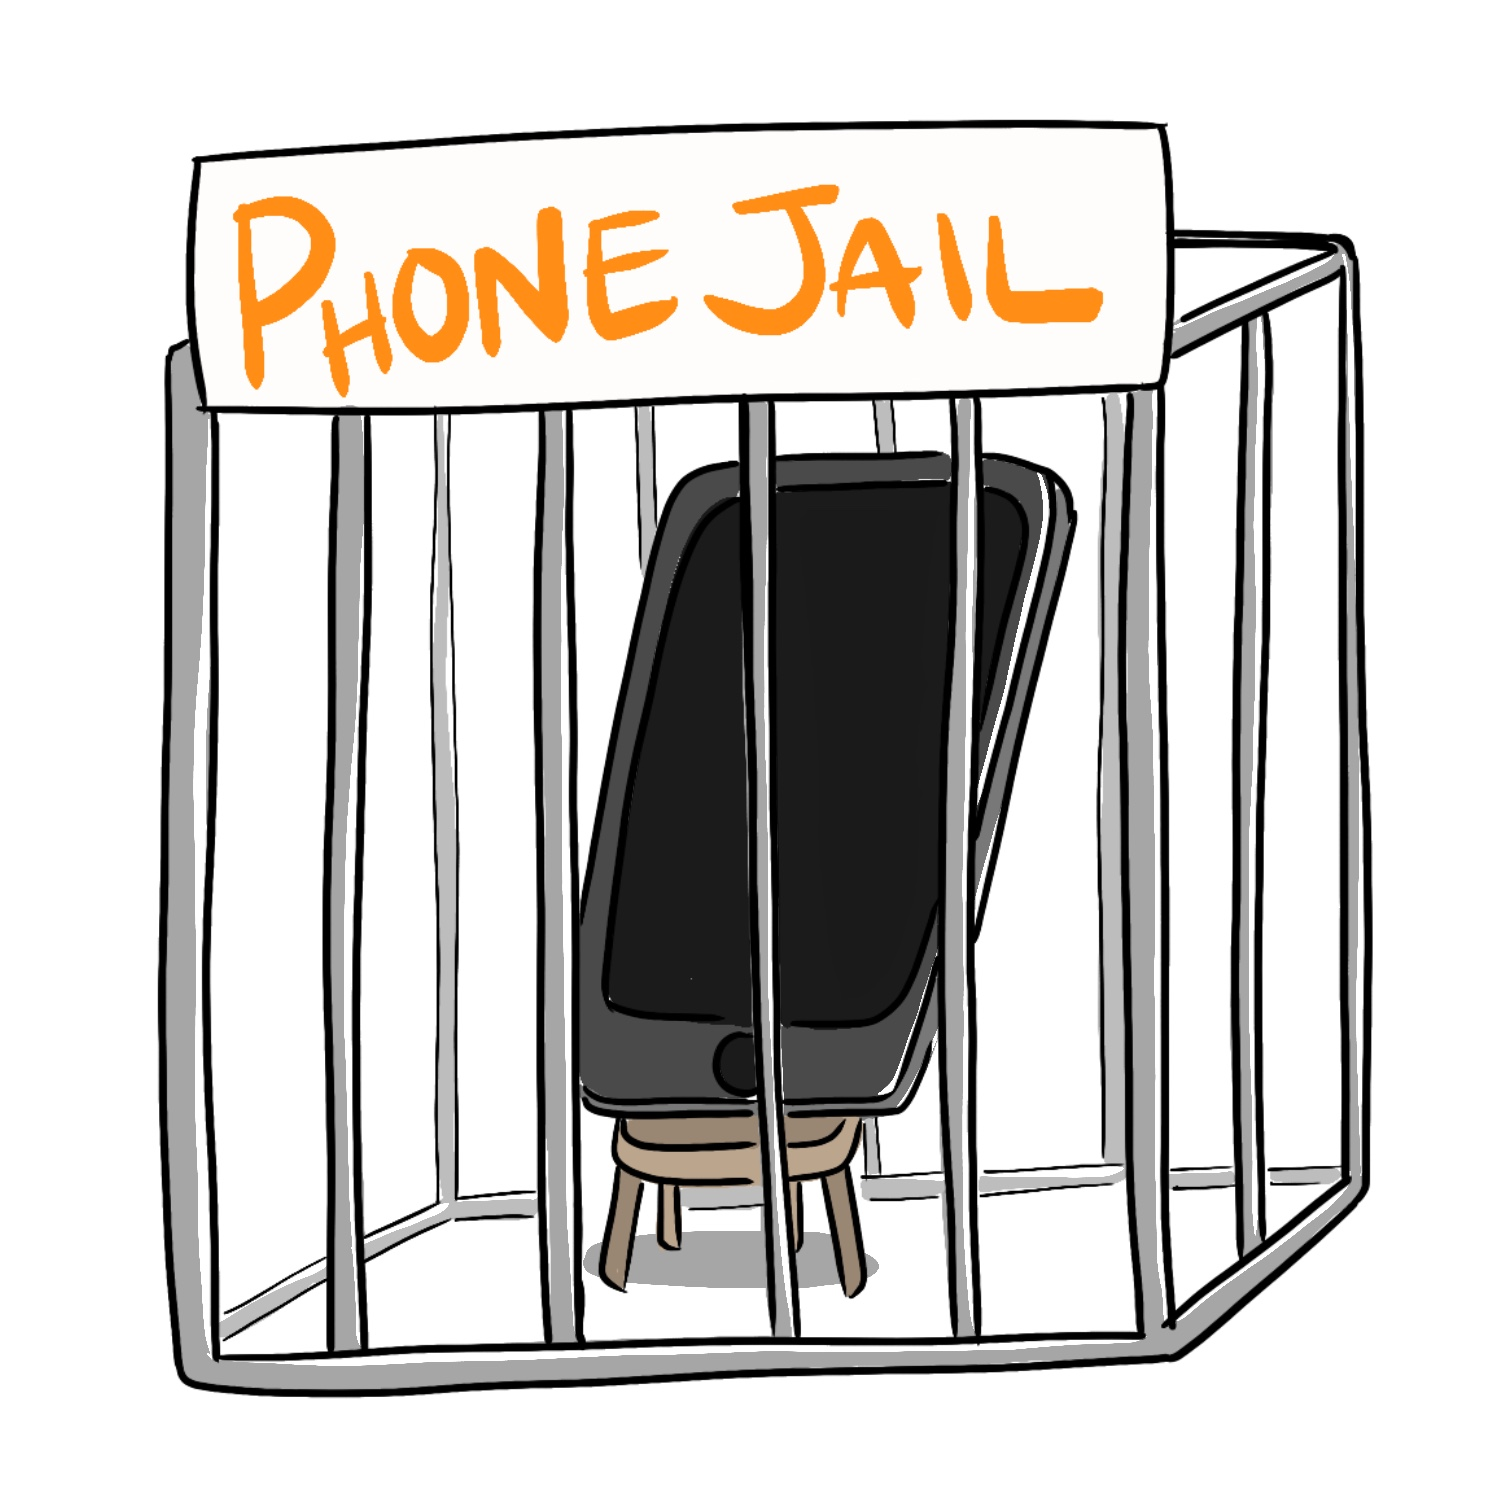 illustration of a smartphone inside of a tiny jail cage. It says Phone Jail across the top of the cage.